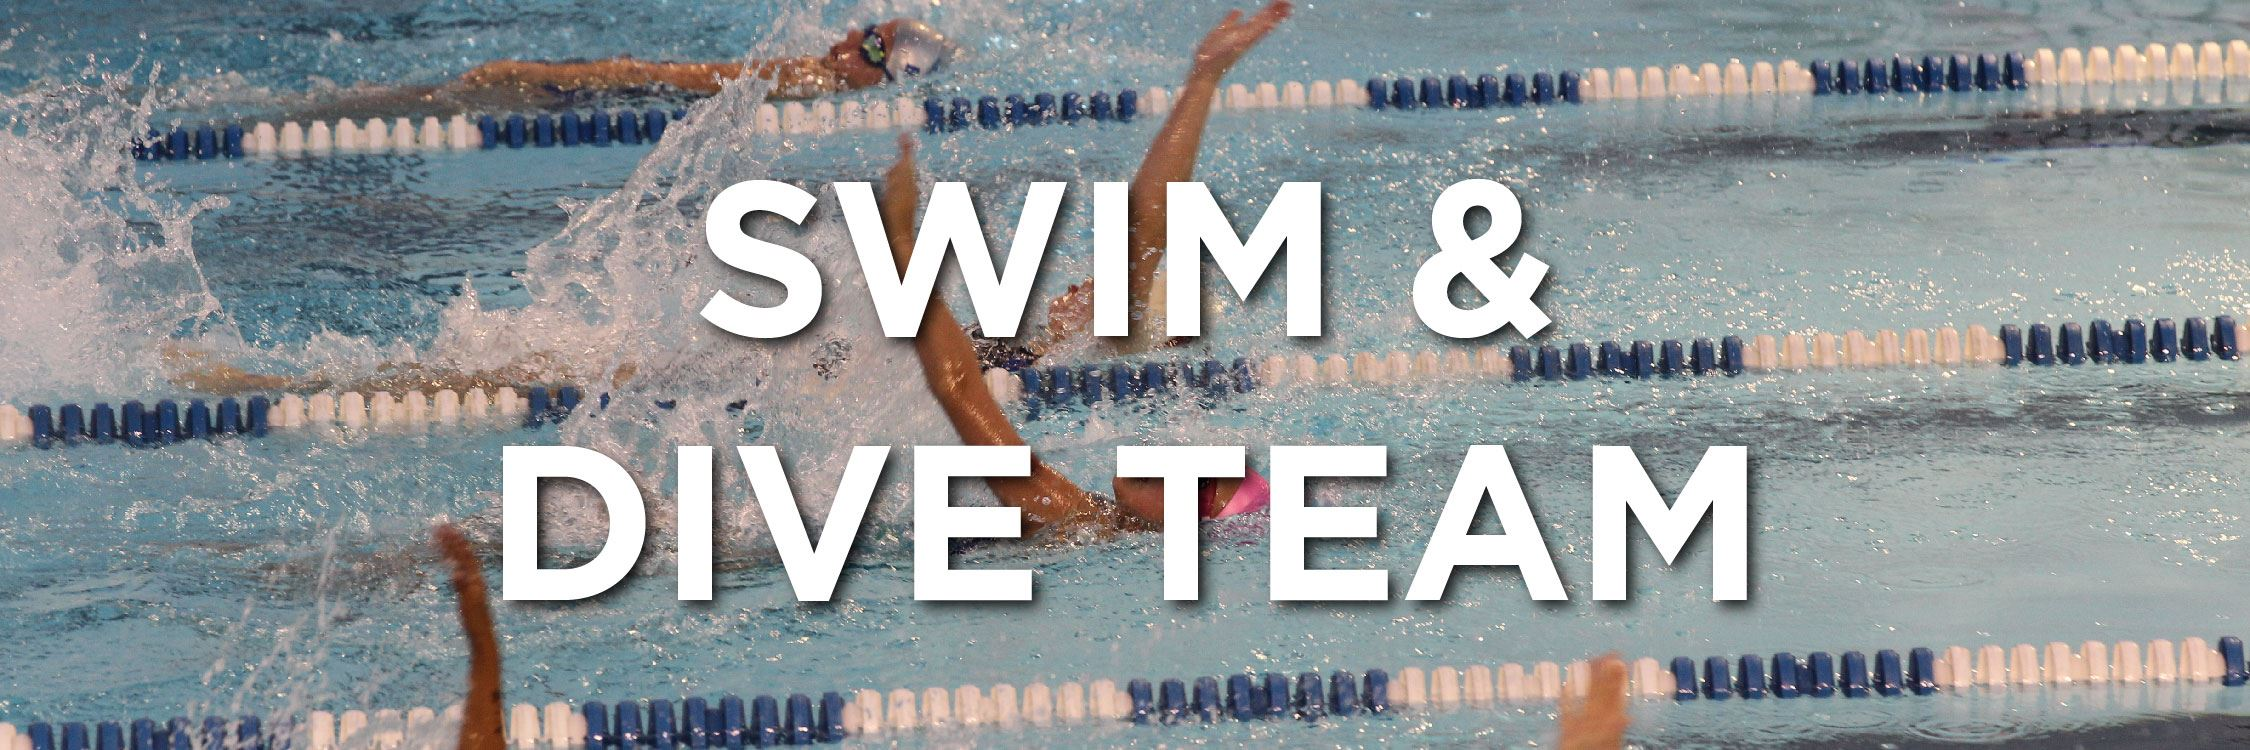 Swim and Dive Team Web Strip-01